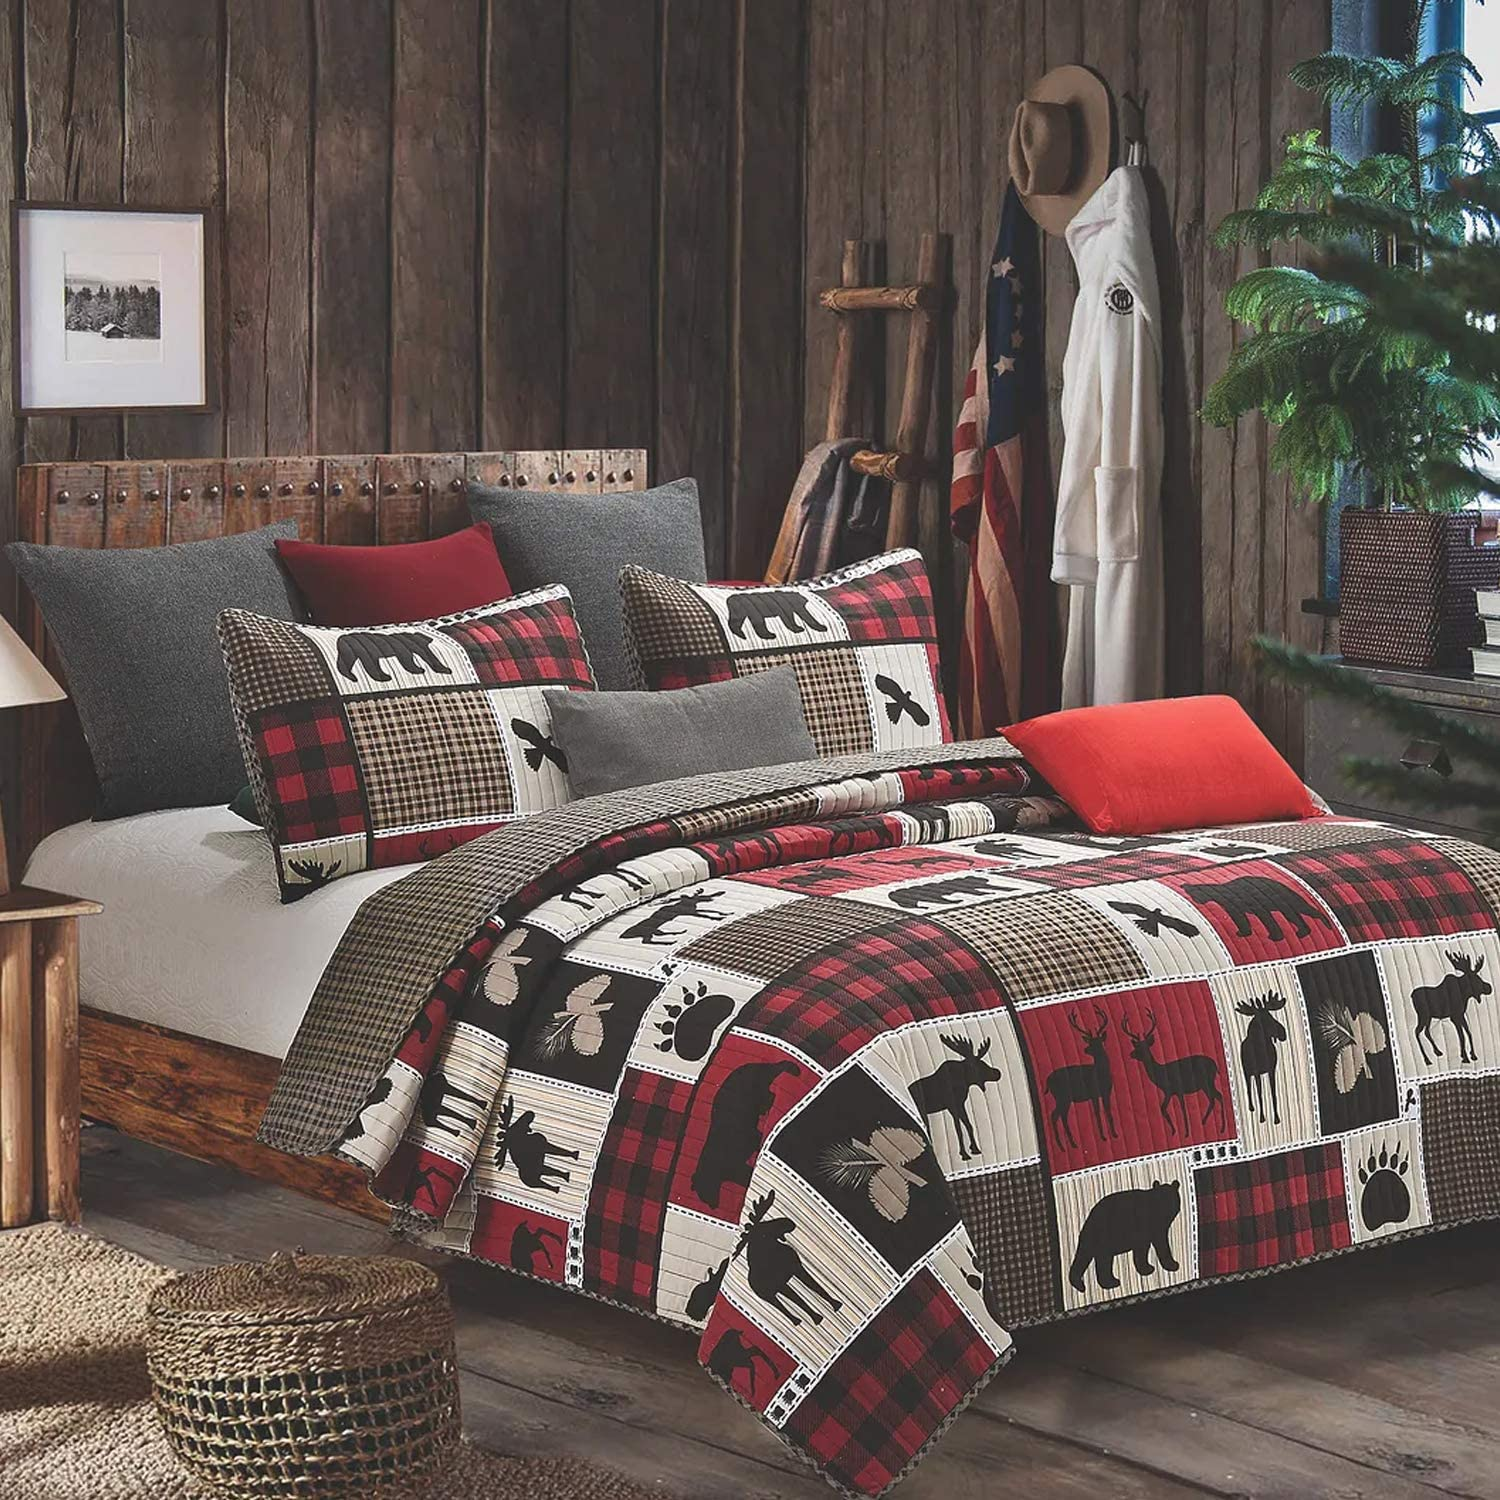 Virah Bella Full Queen Quilt Bedding - Cheap mail order sales Sale price Life 3-Piece Lodge Set